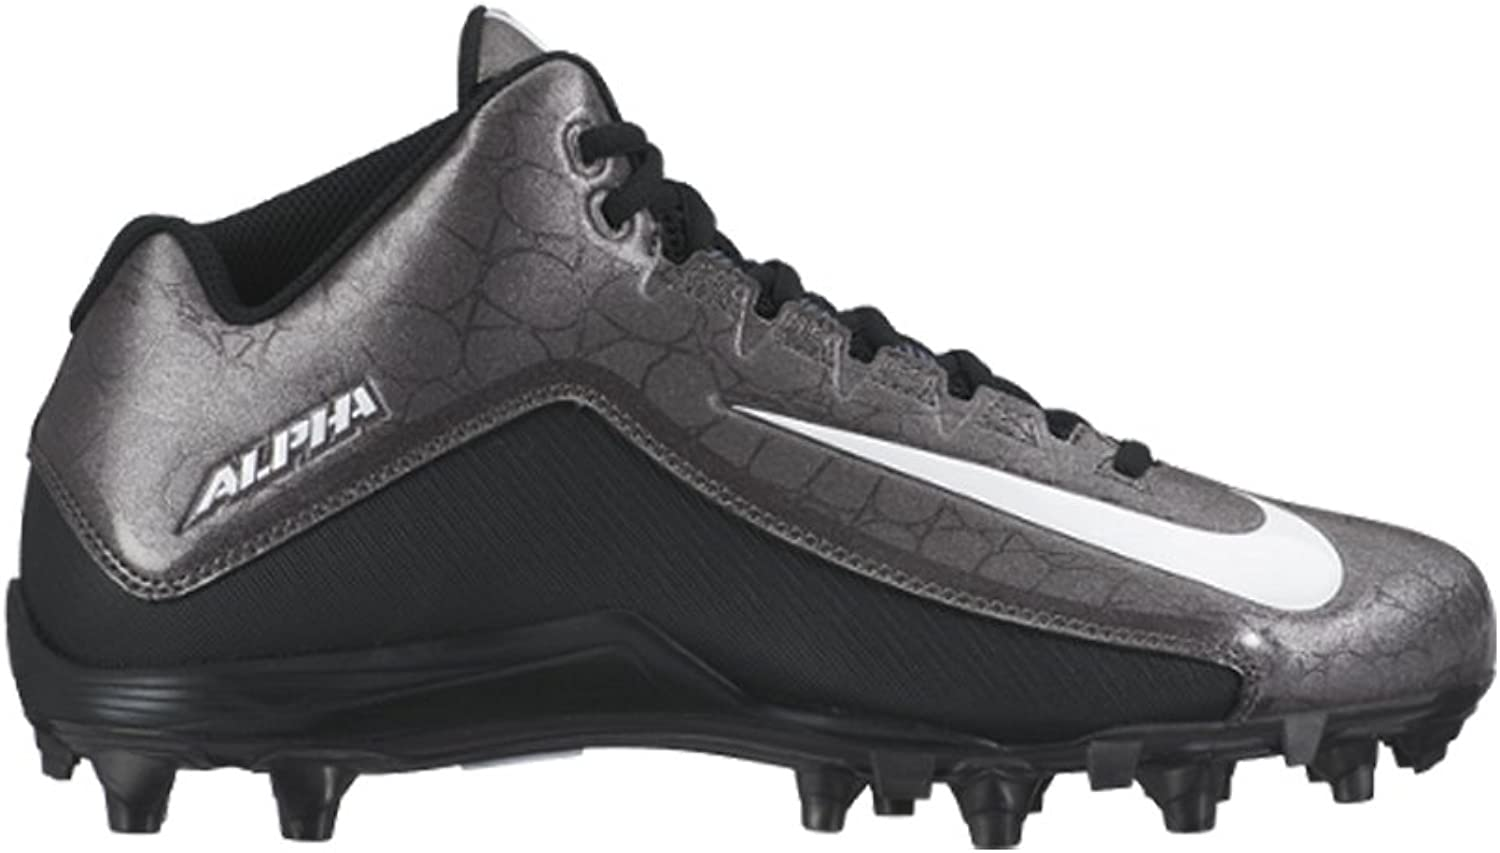 NIKE Mens Alpha Strike 2 Three-Quarter Football Cleat schwarz Dark grau Weiß Größe 13 M US